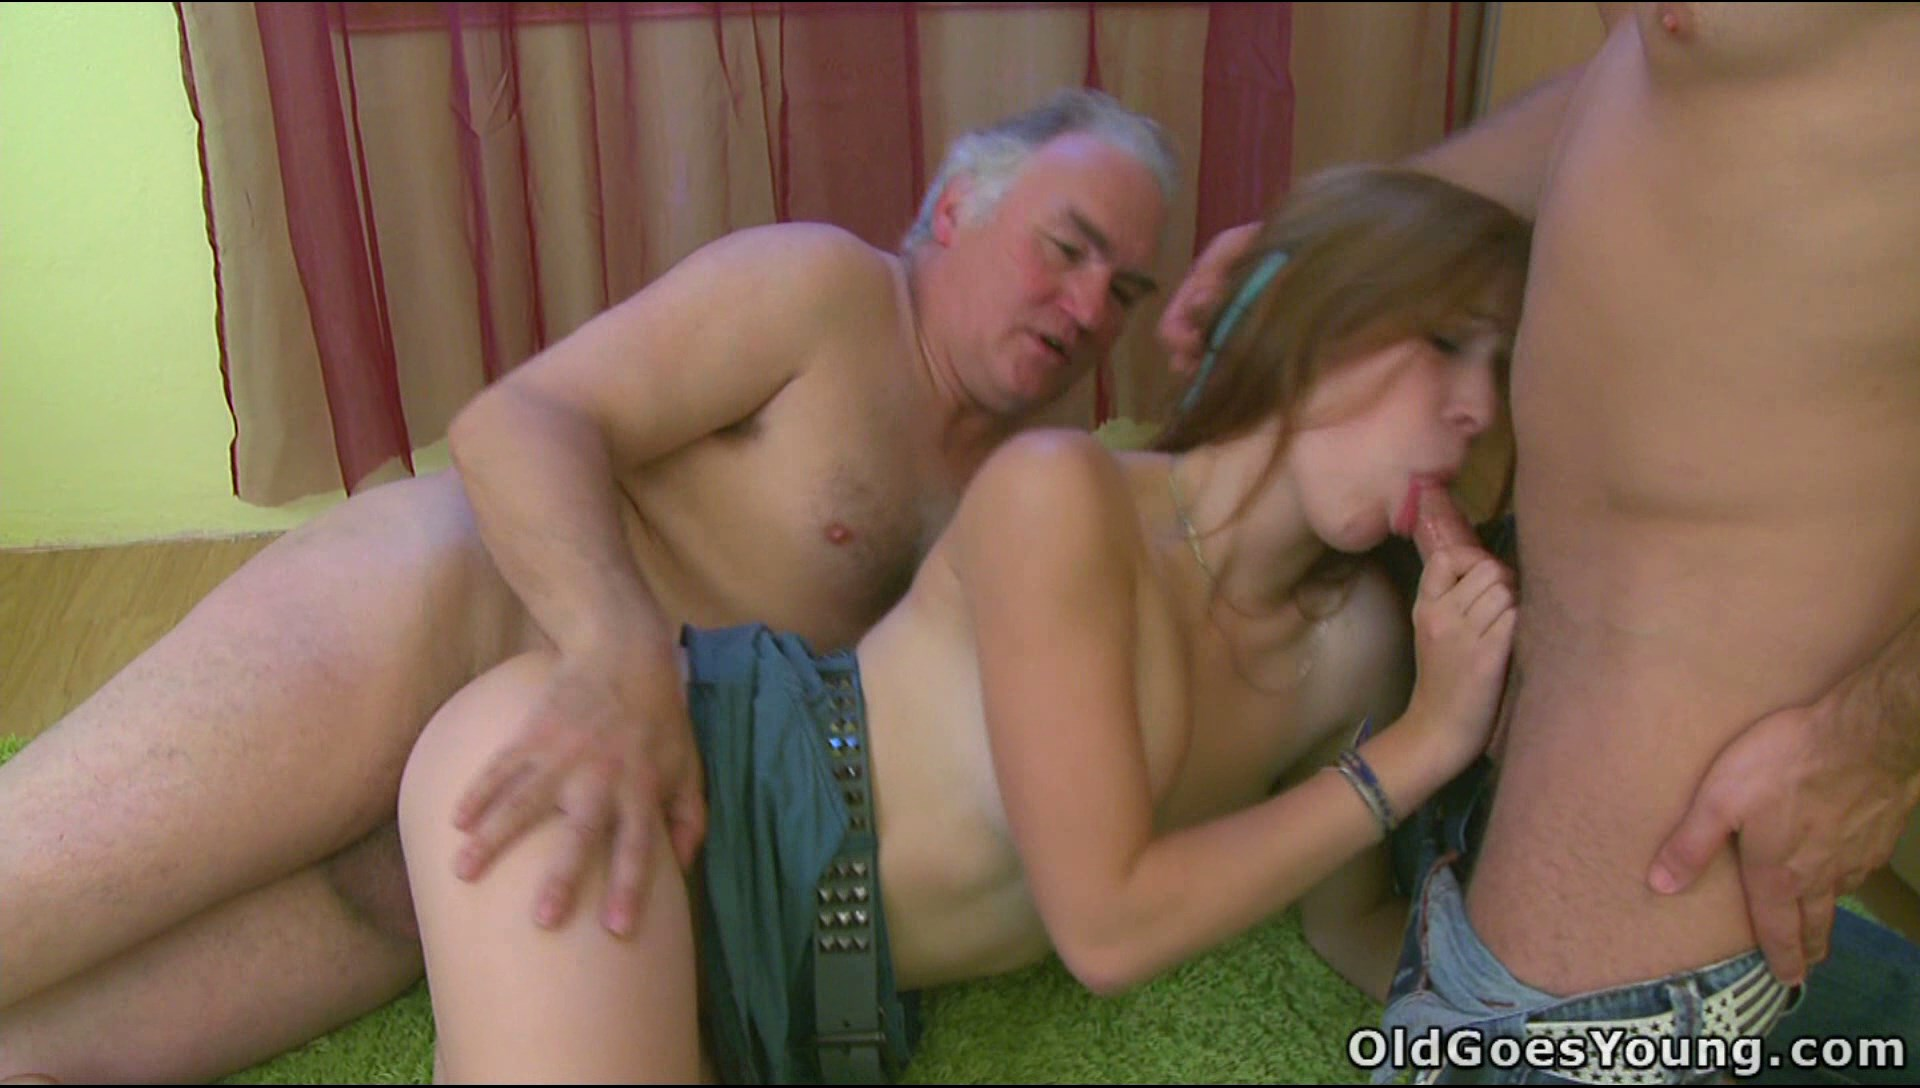 Little russian cutie fucked by old guy. EPIC CLIP!